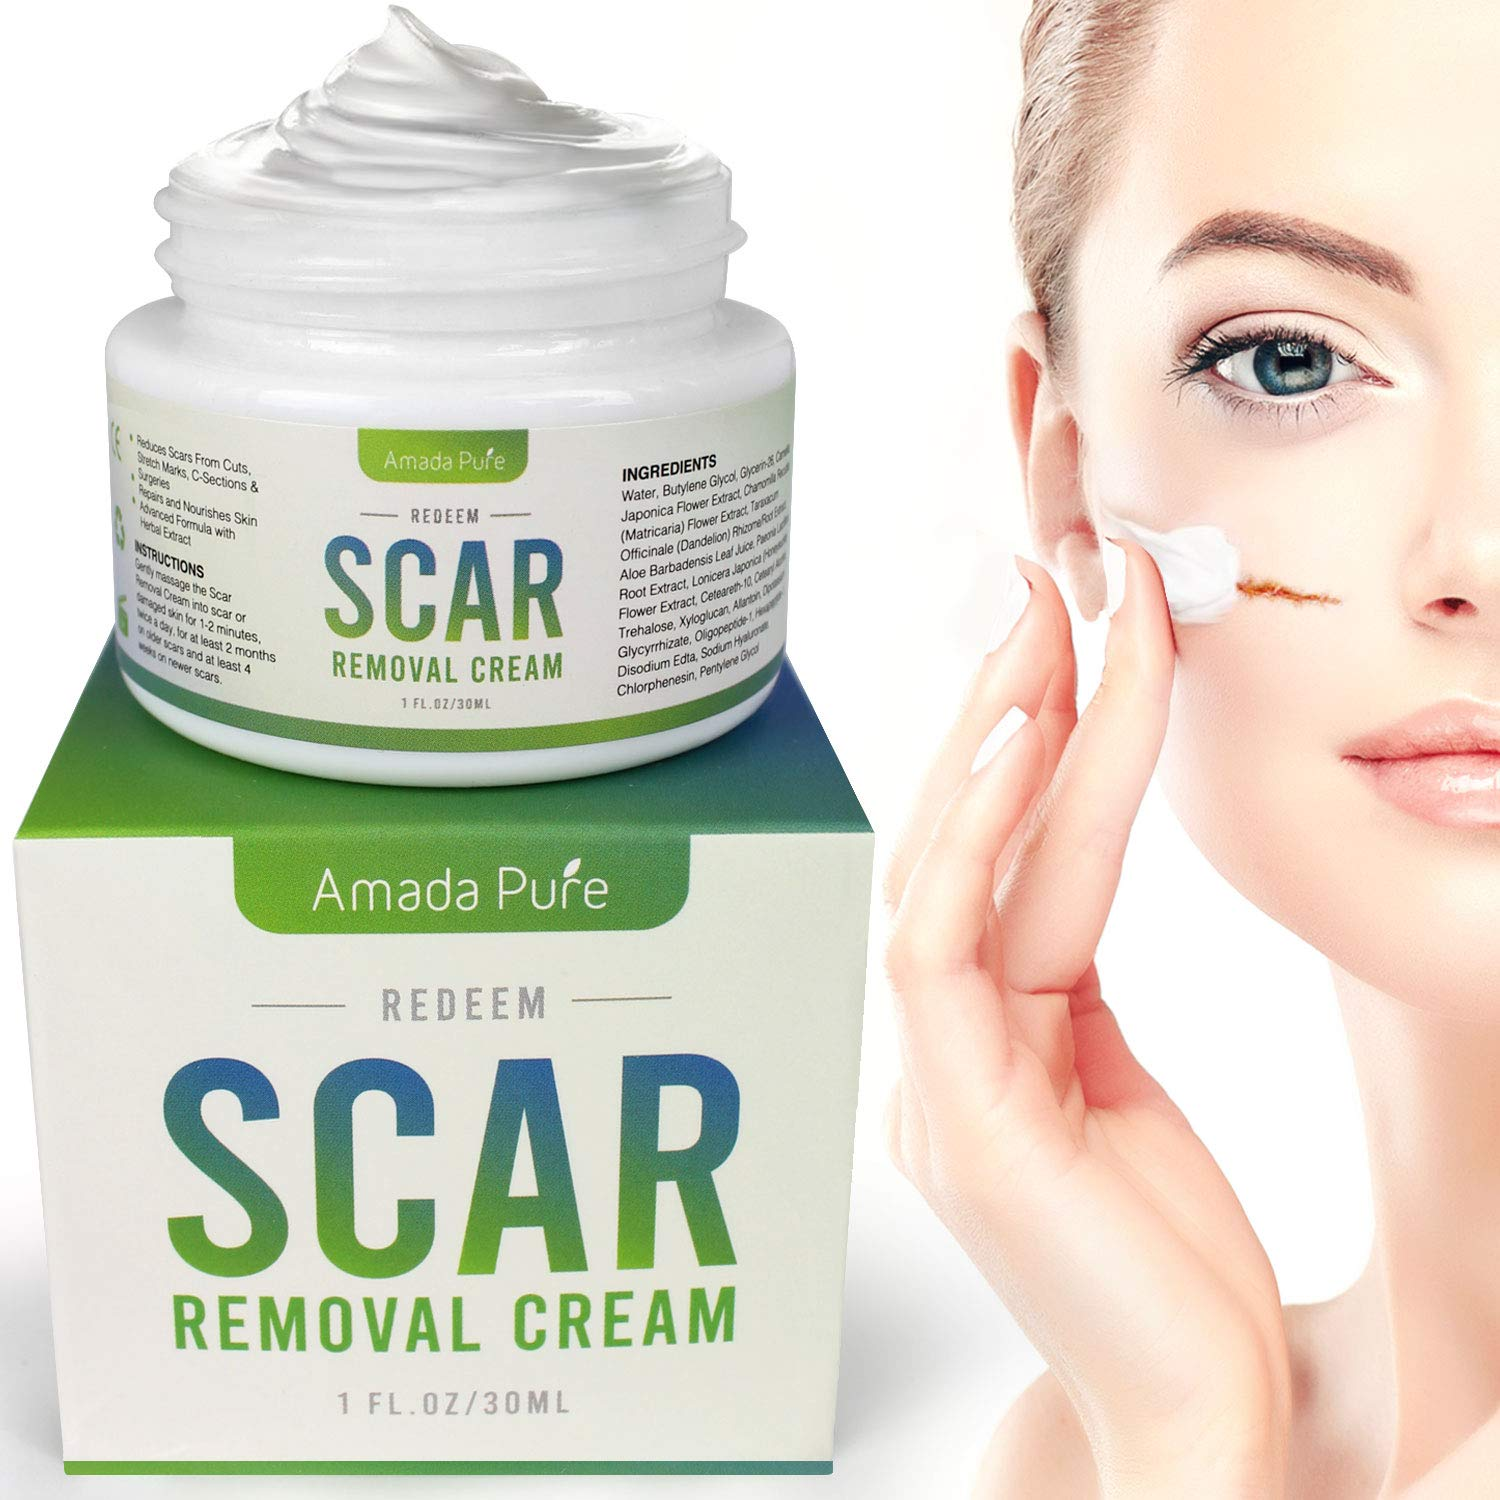 Amada Pure Scar Removal Cream - Acne Scar Removal Cream for Face and Body, Old & New Scars from Cuts, Stretch Marks, C-Sections & Surgeries - with Natural Herbal Extracts Formula - (30 ml)